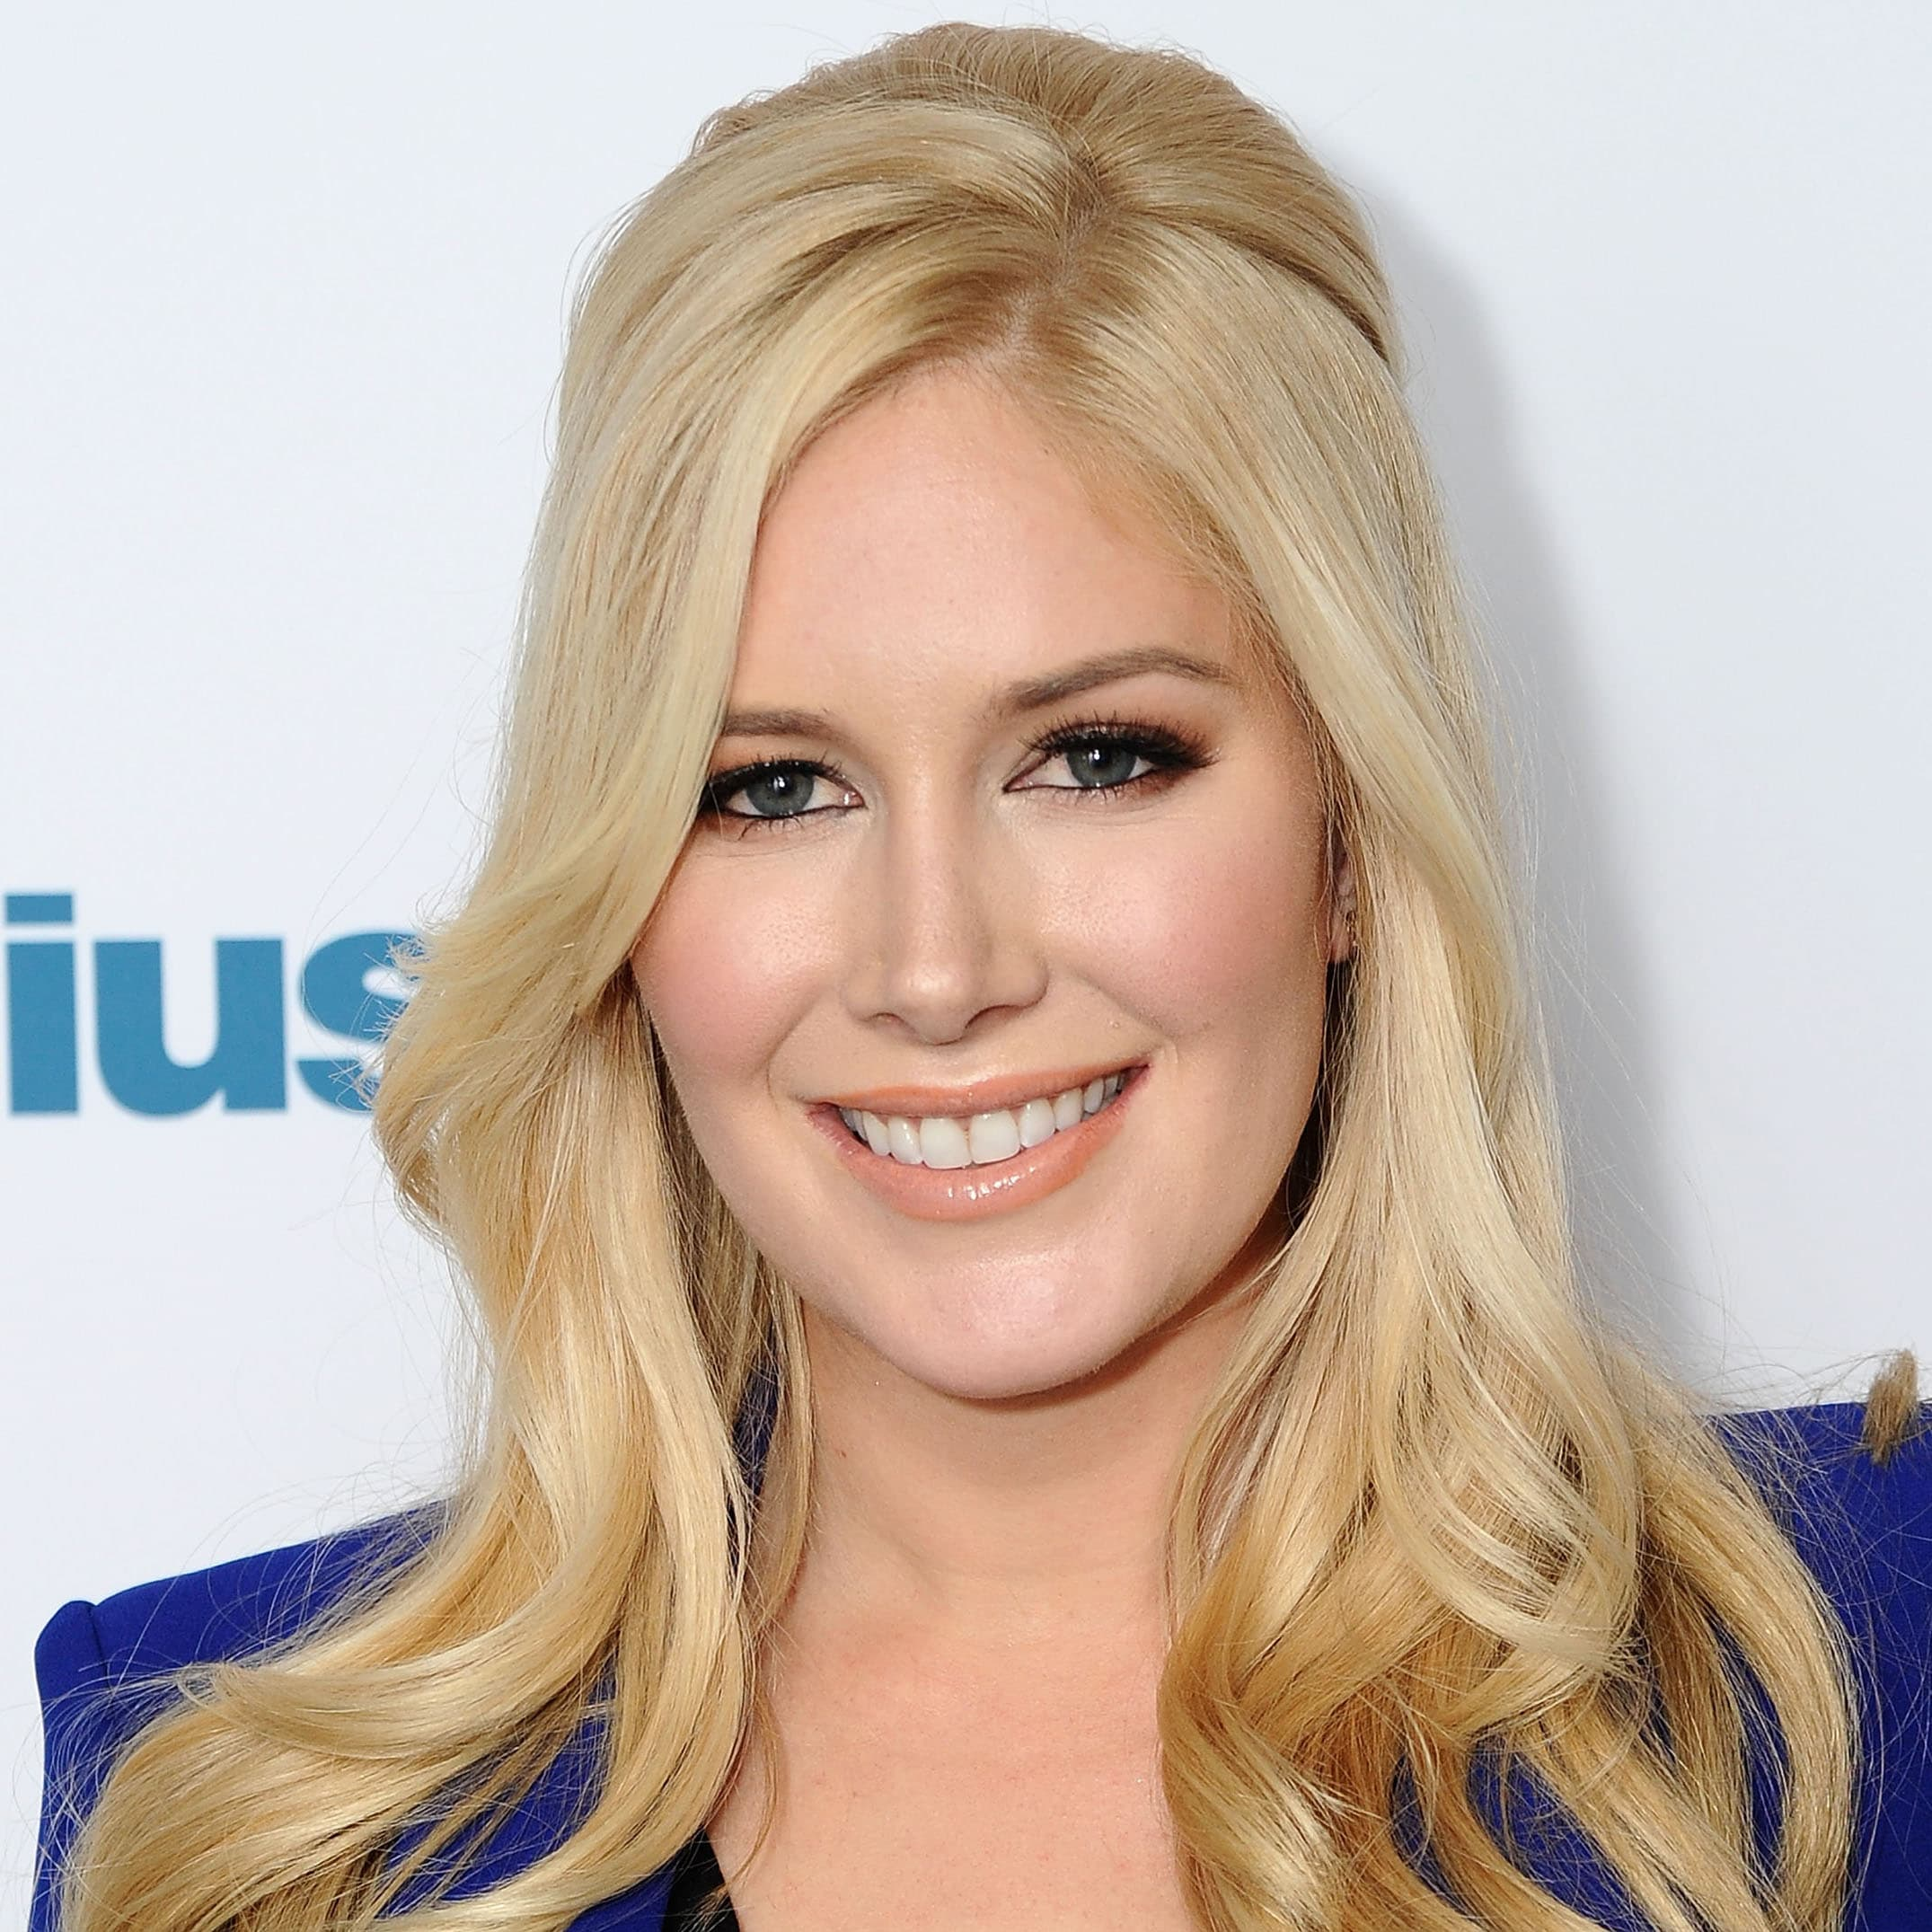 Heidi Montag Plastic Surgery Before And After Pics photo - 1